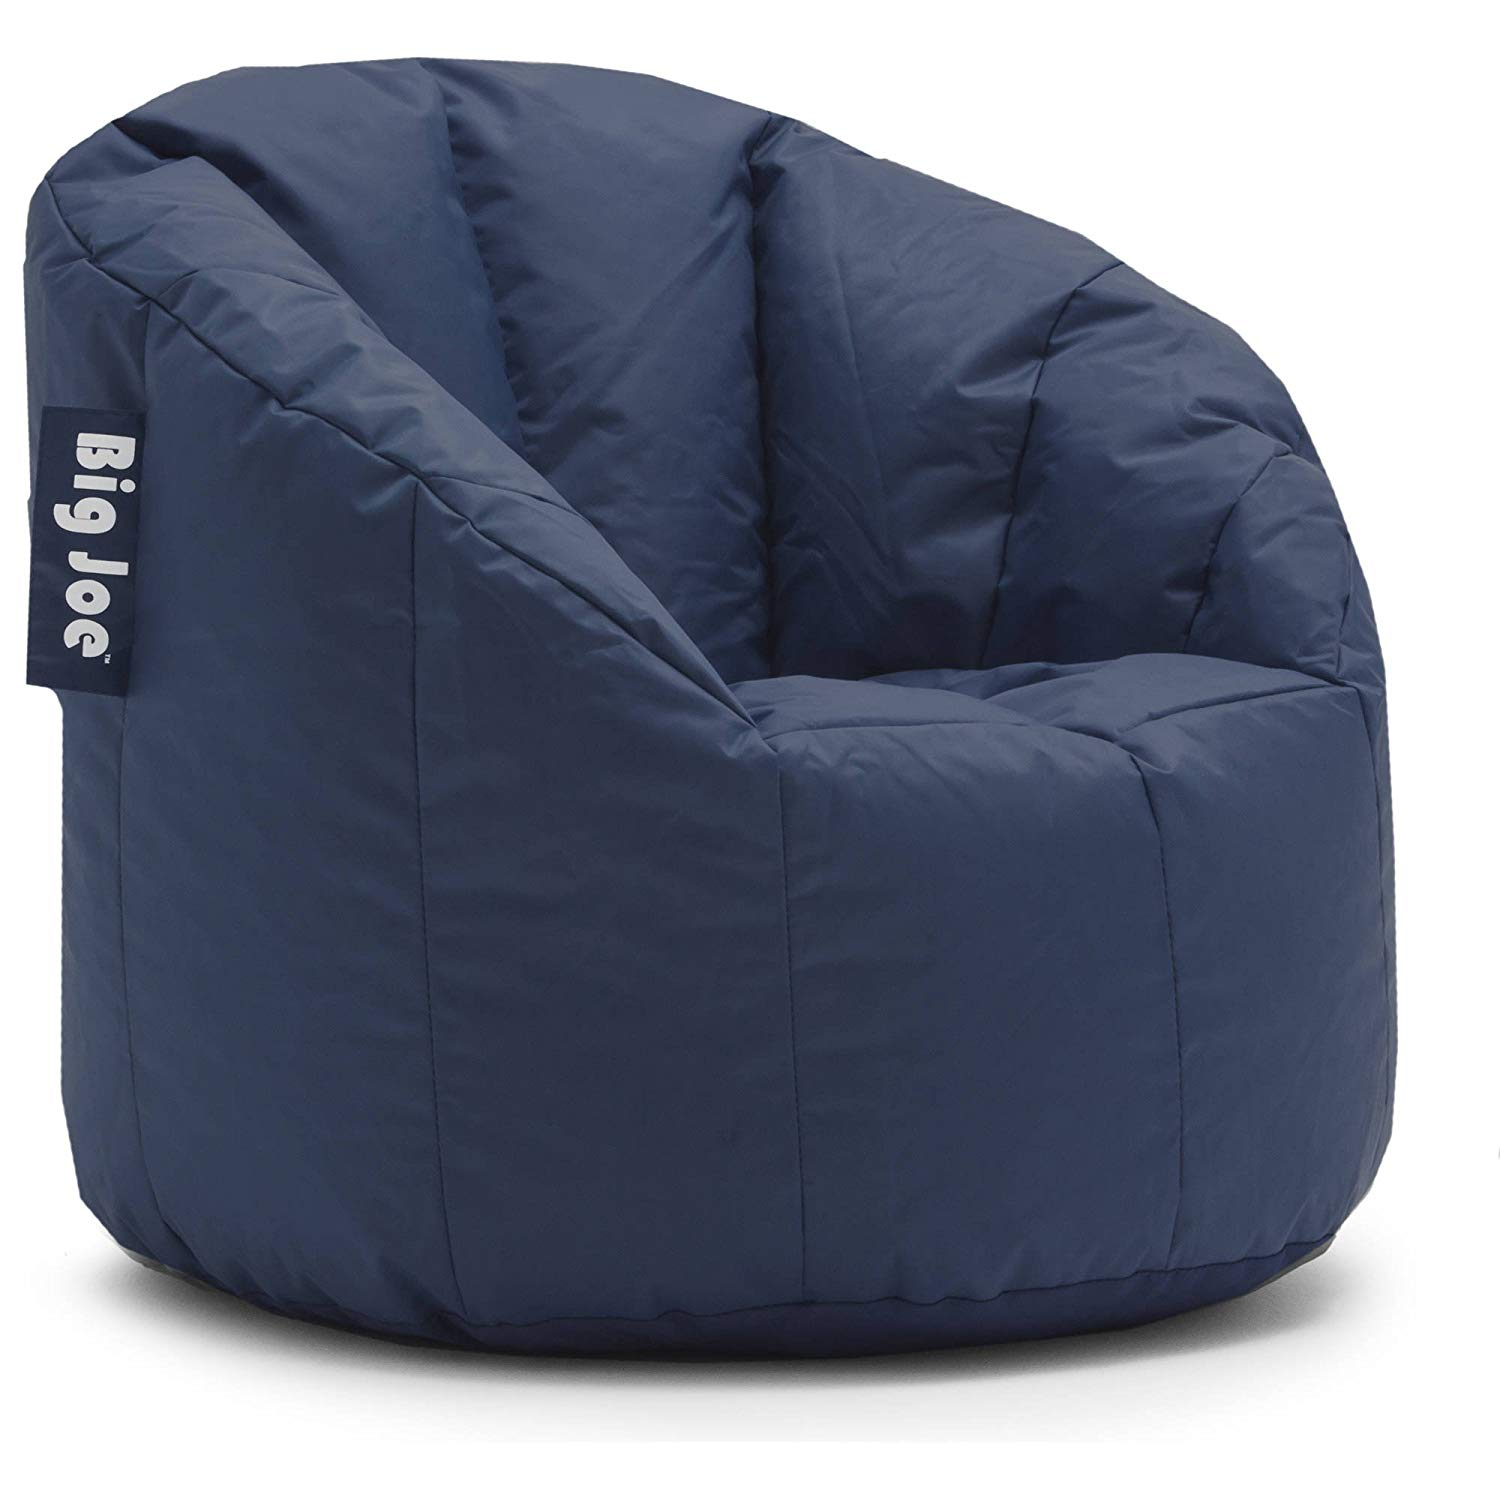 Big Joe Ultimate Comfort Milano Bean Bag Chair